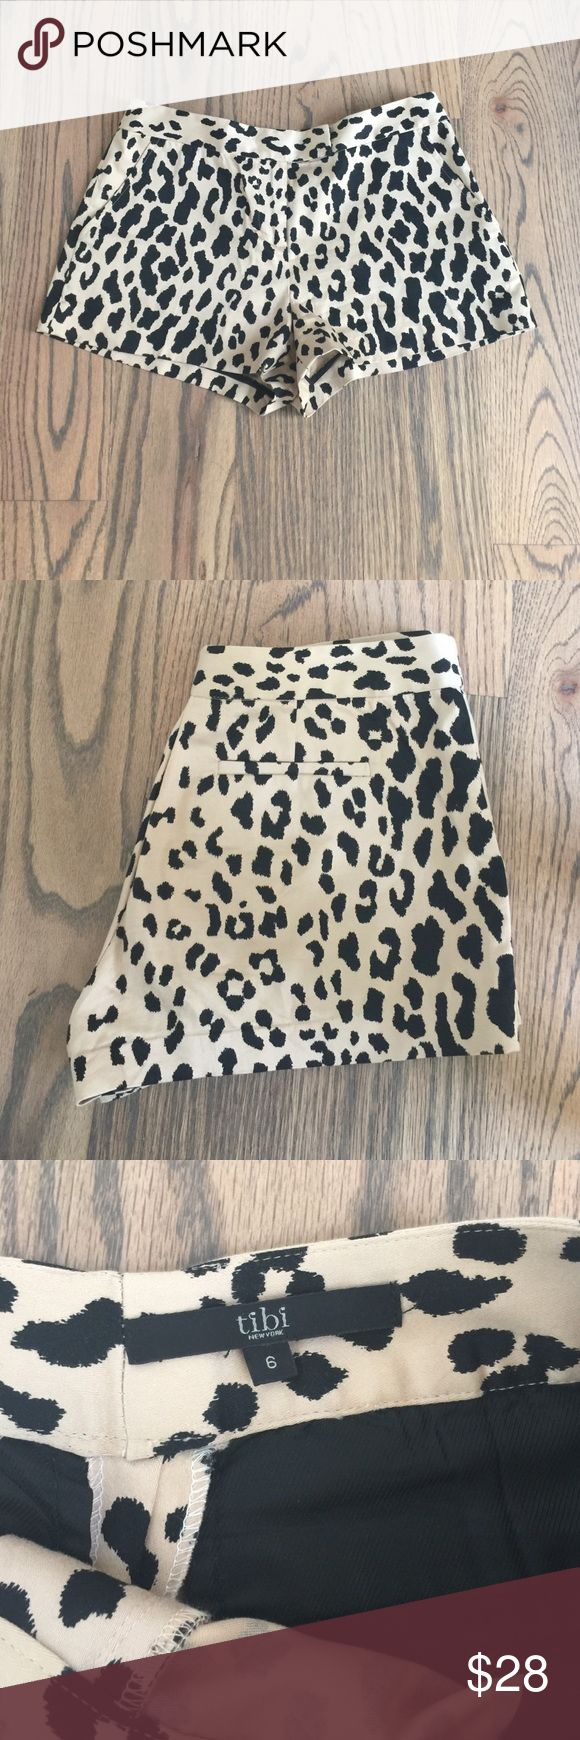 Tibi cheetah / leopard print shorts Like new Tibi shorts in a fun cheetah / leopard print! These shorts run small. They are a 6 but fit like a 4. Length measures 11 in and waist measures about 28-29 inches Tibi Shorts